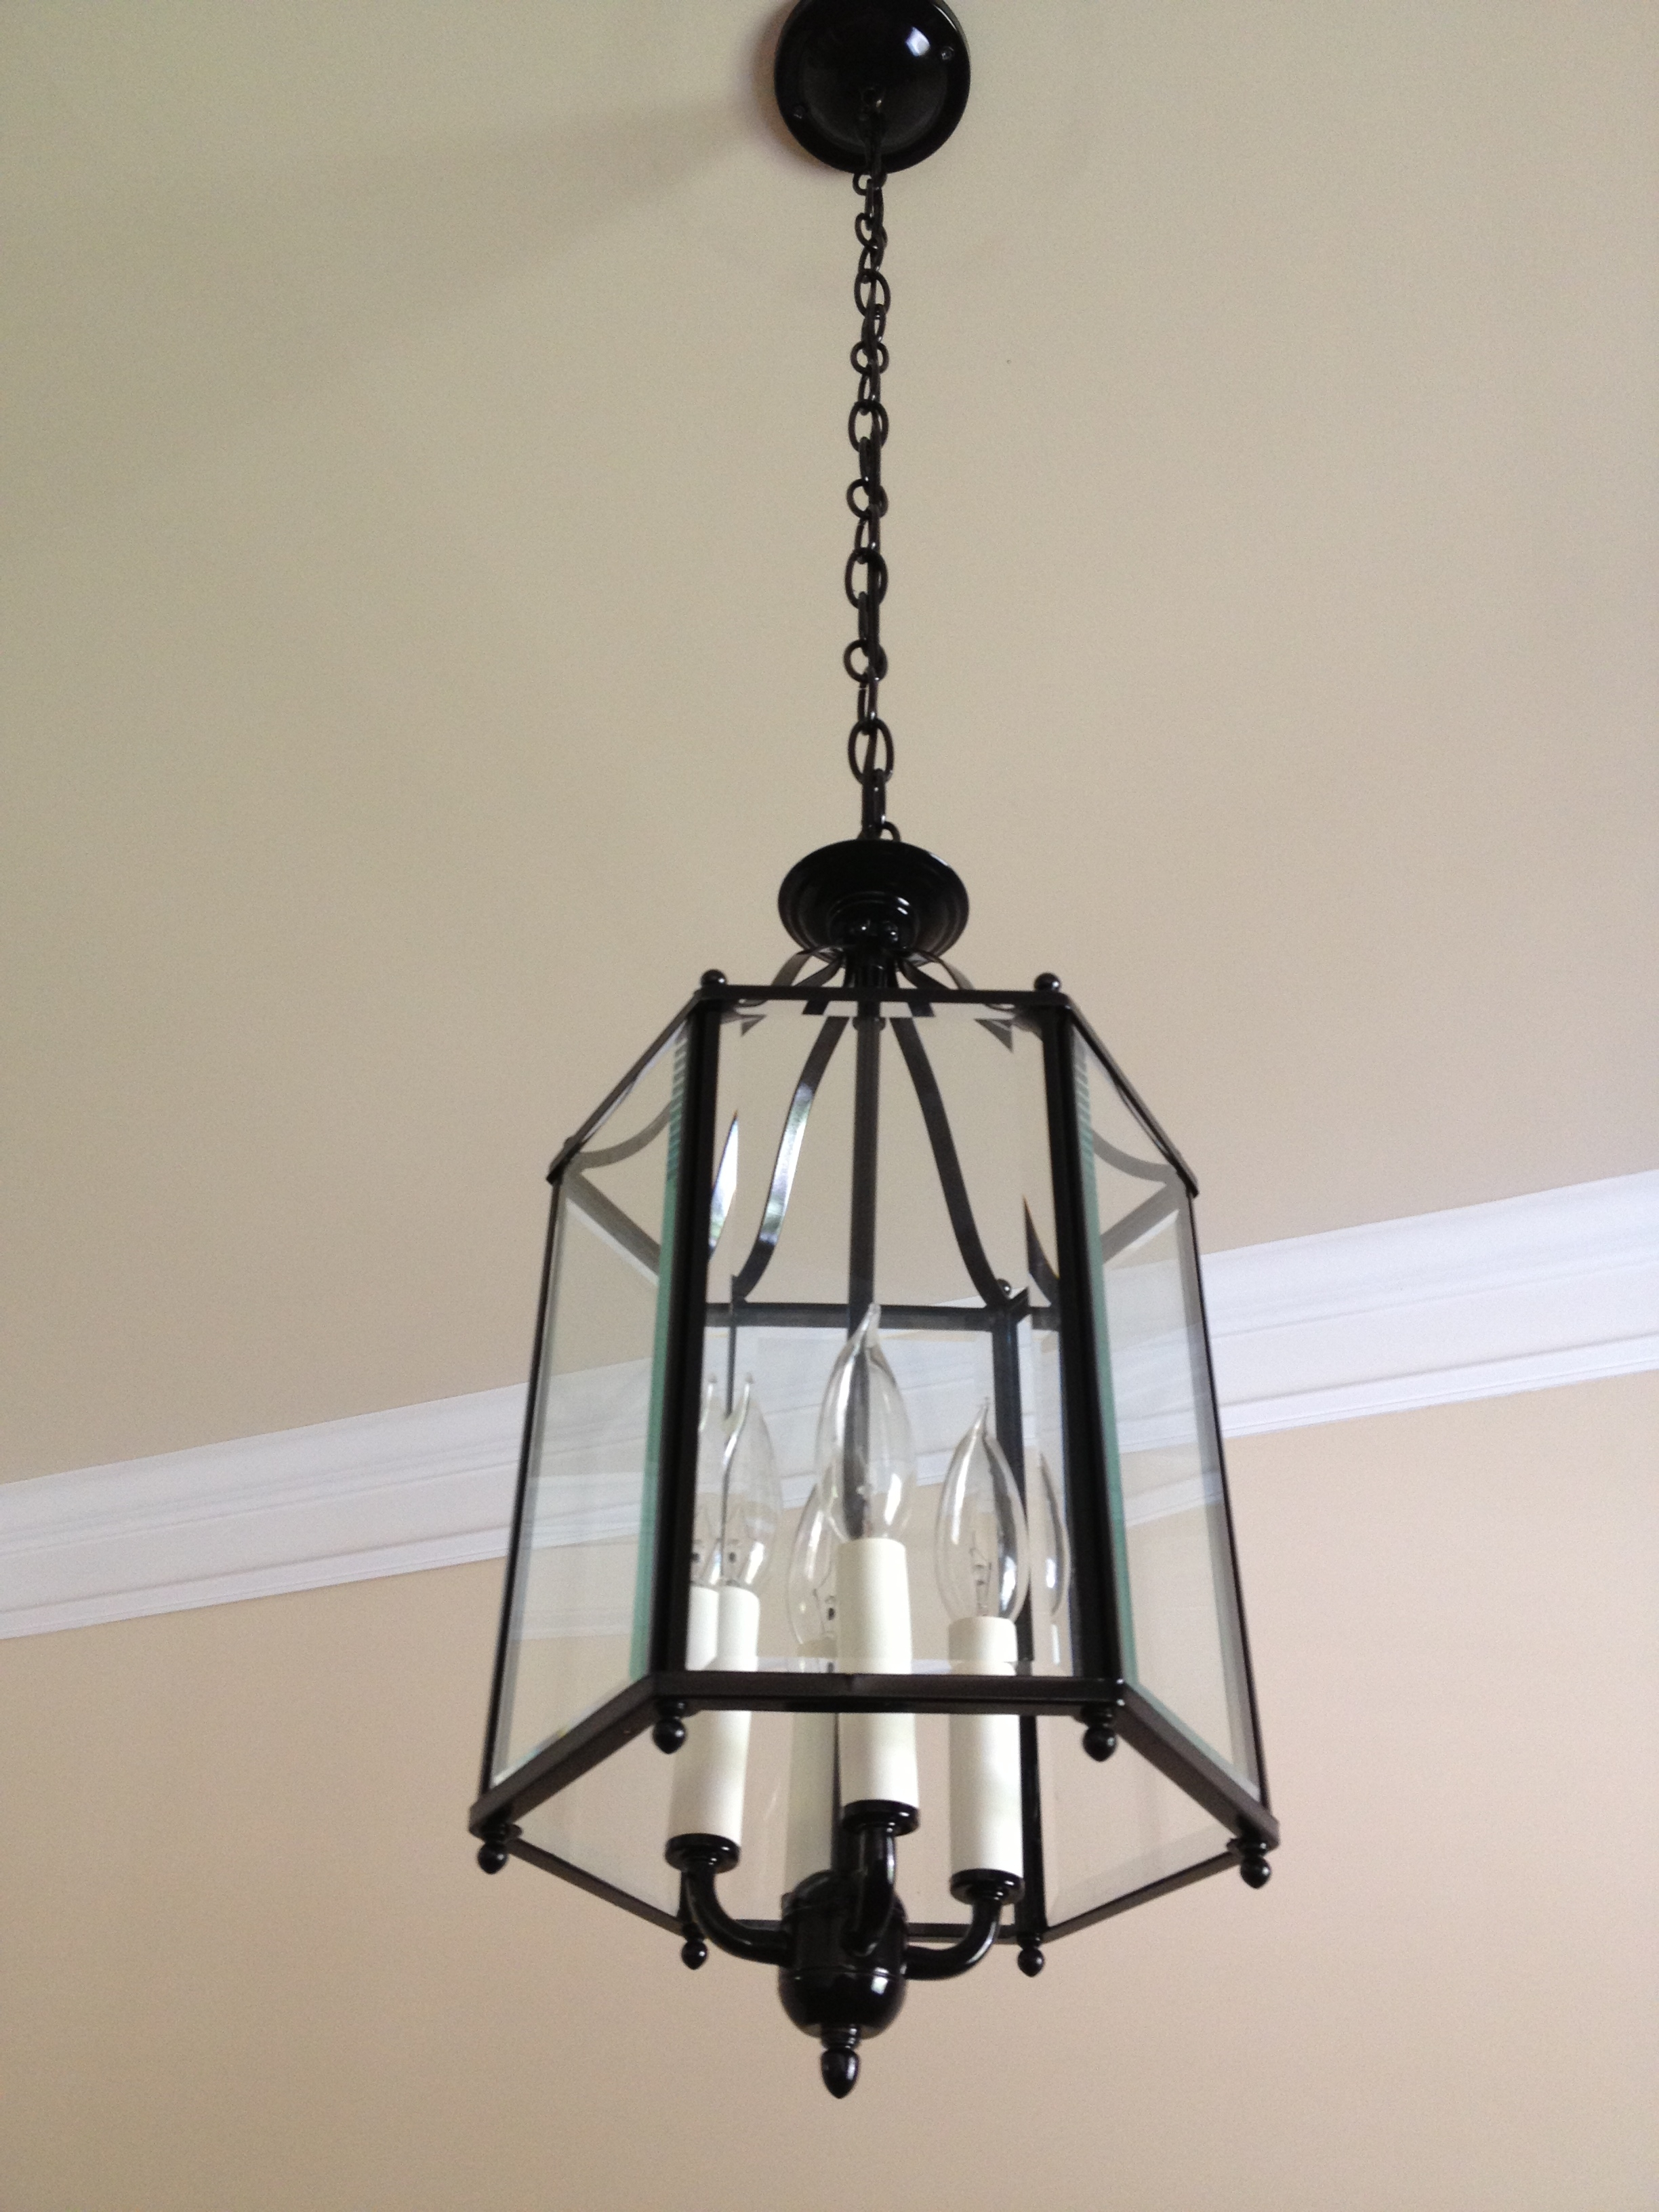 Moroccan Outdoor Electric Lanterns For Famous Fixtures Light : Construct Oil Lantern Electric Light Fixtures (View 8 of 20)